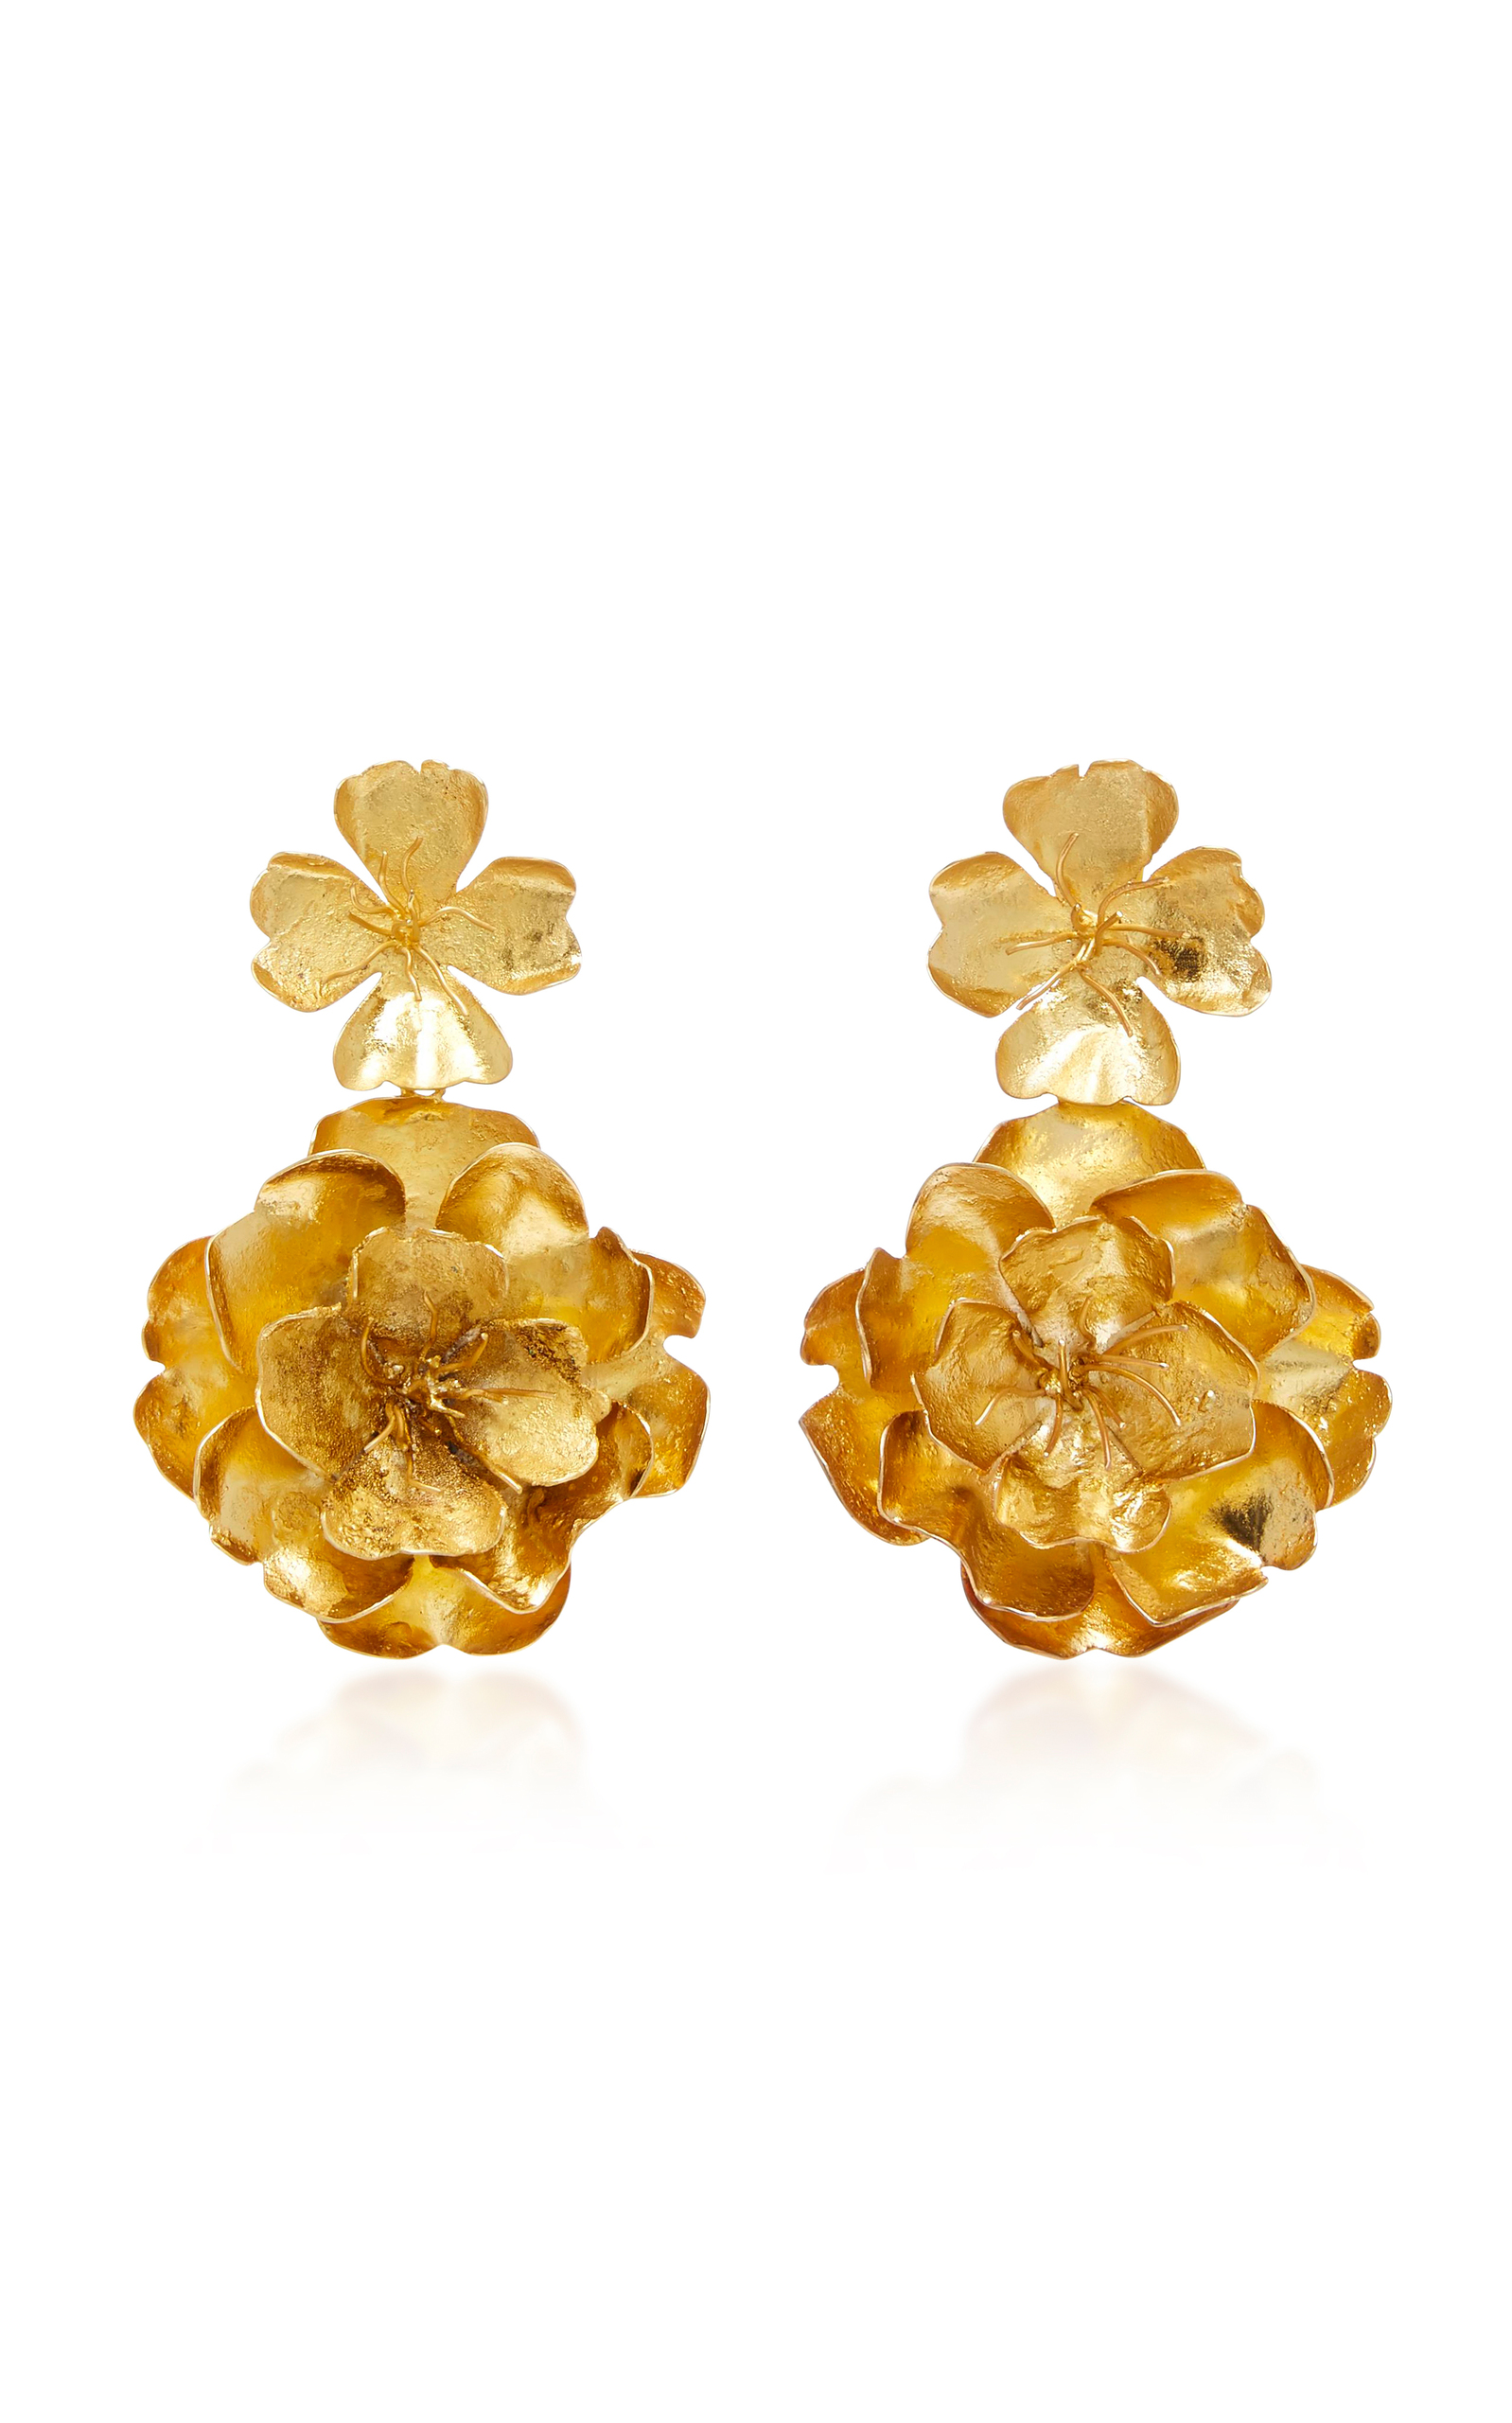 flowerearring earrings earring gold type jewelry hawaiian